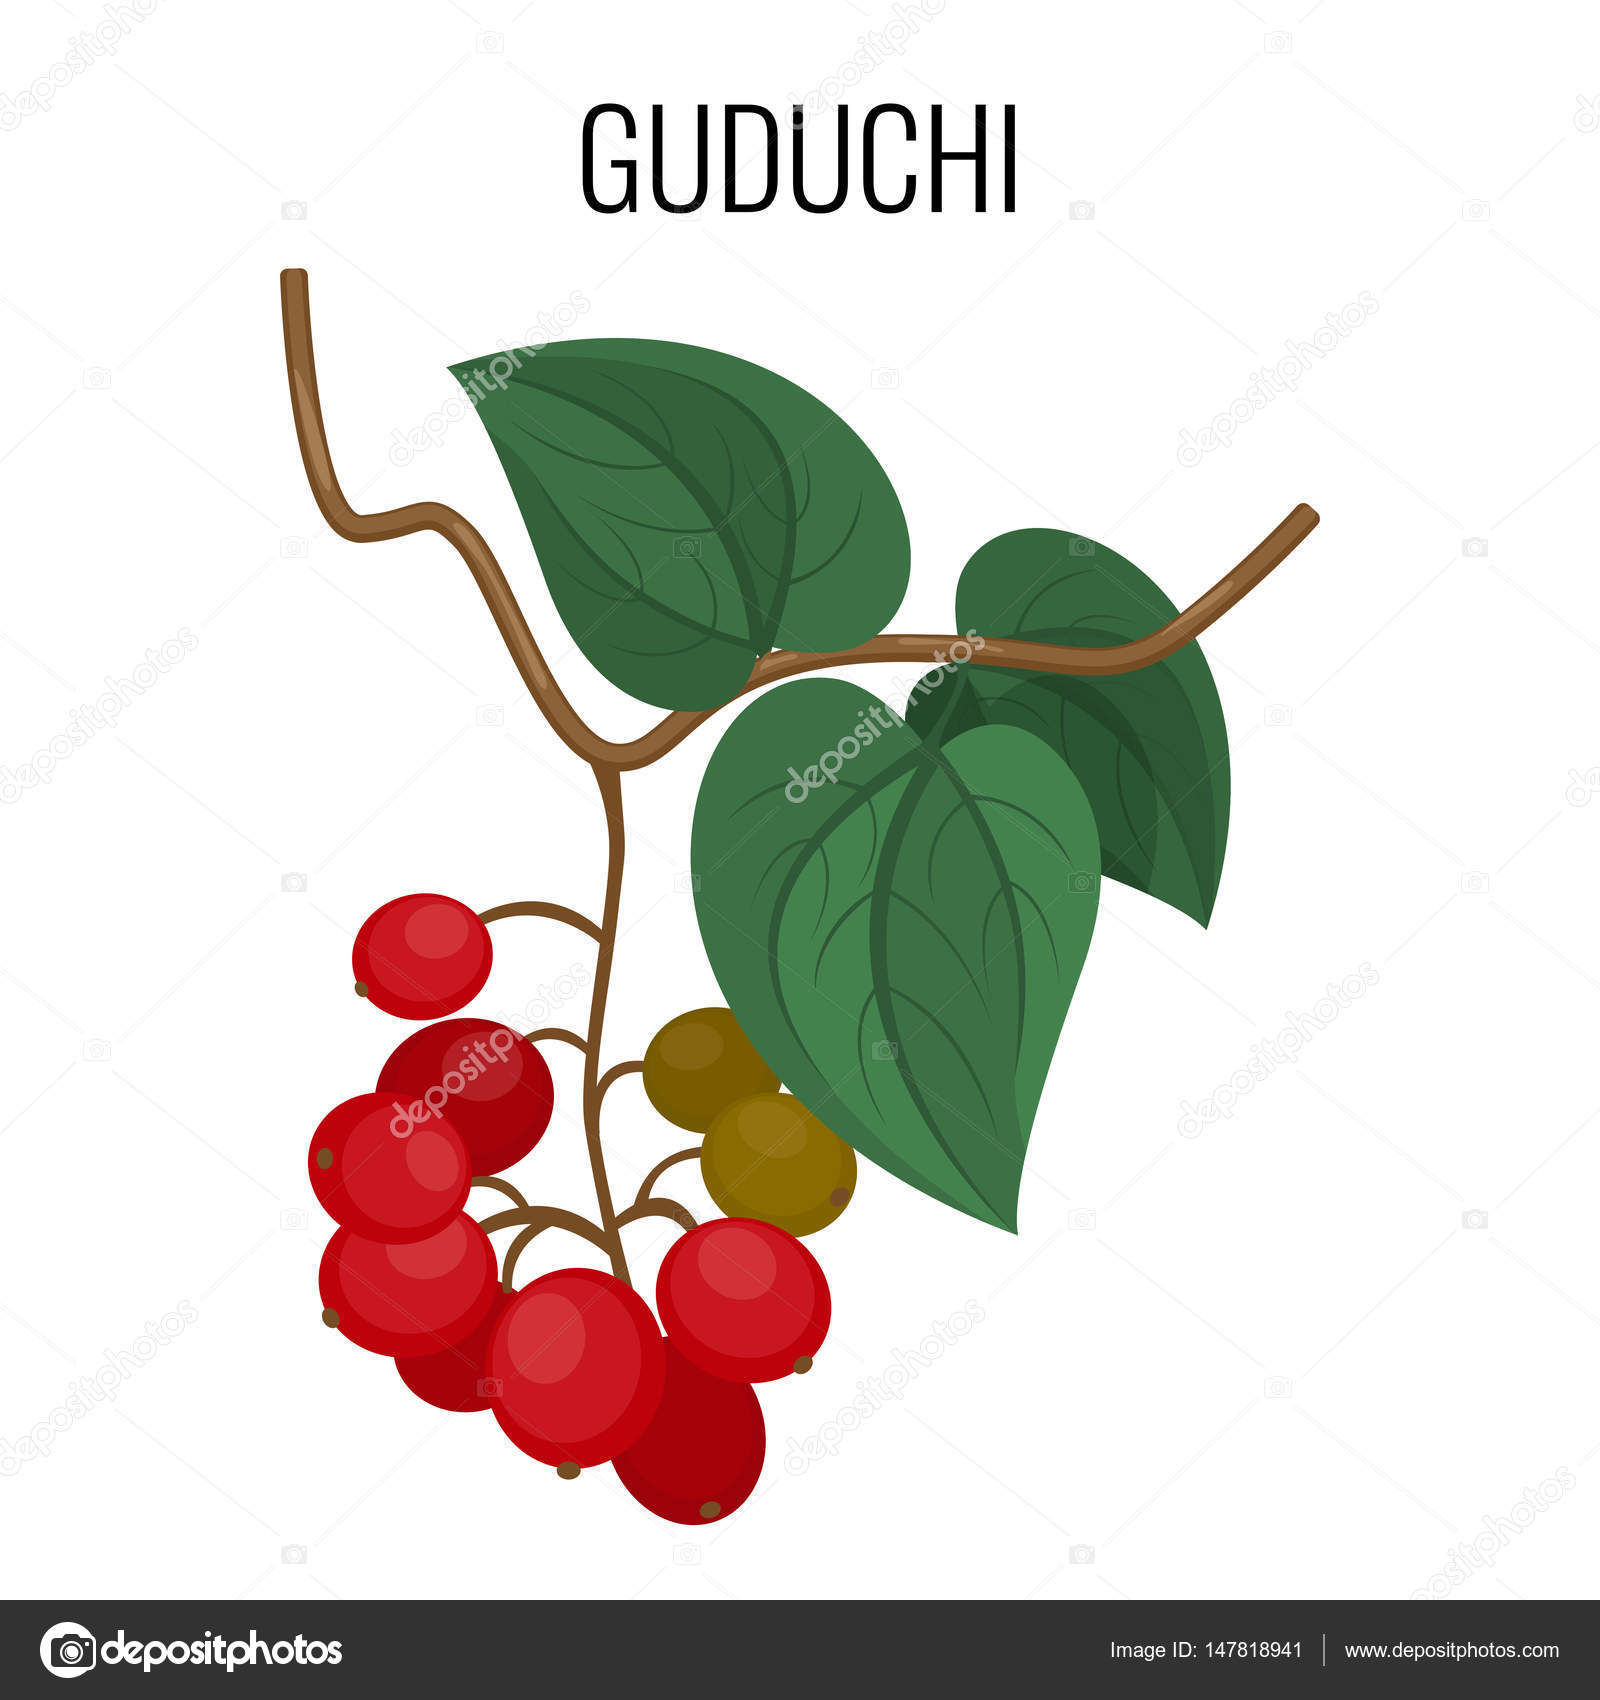 Guduchi Branch With Red Berries And Leaves Isolated On White